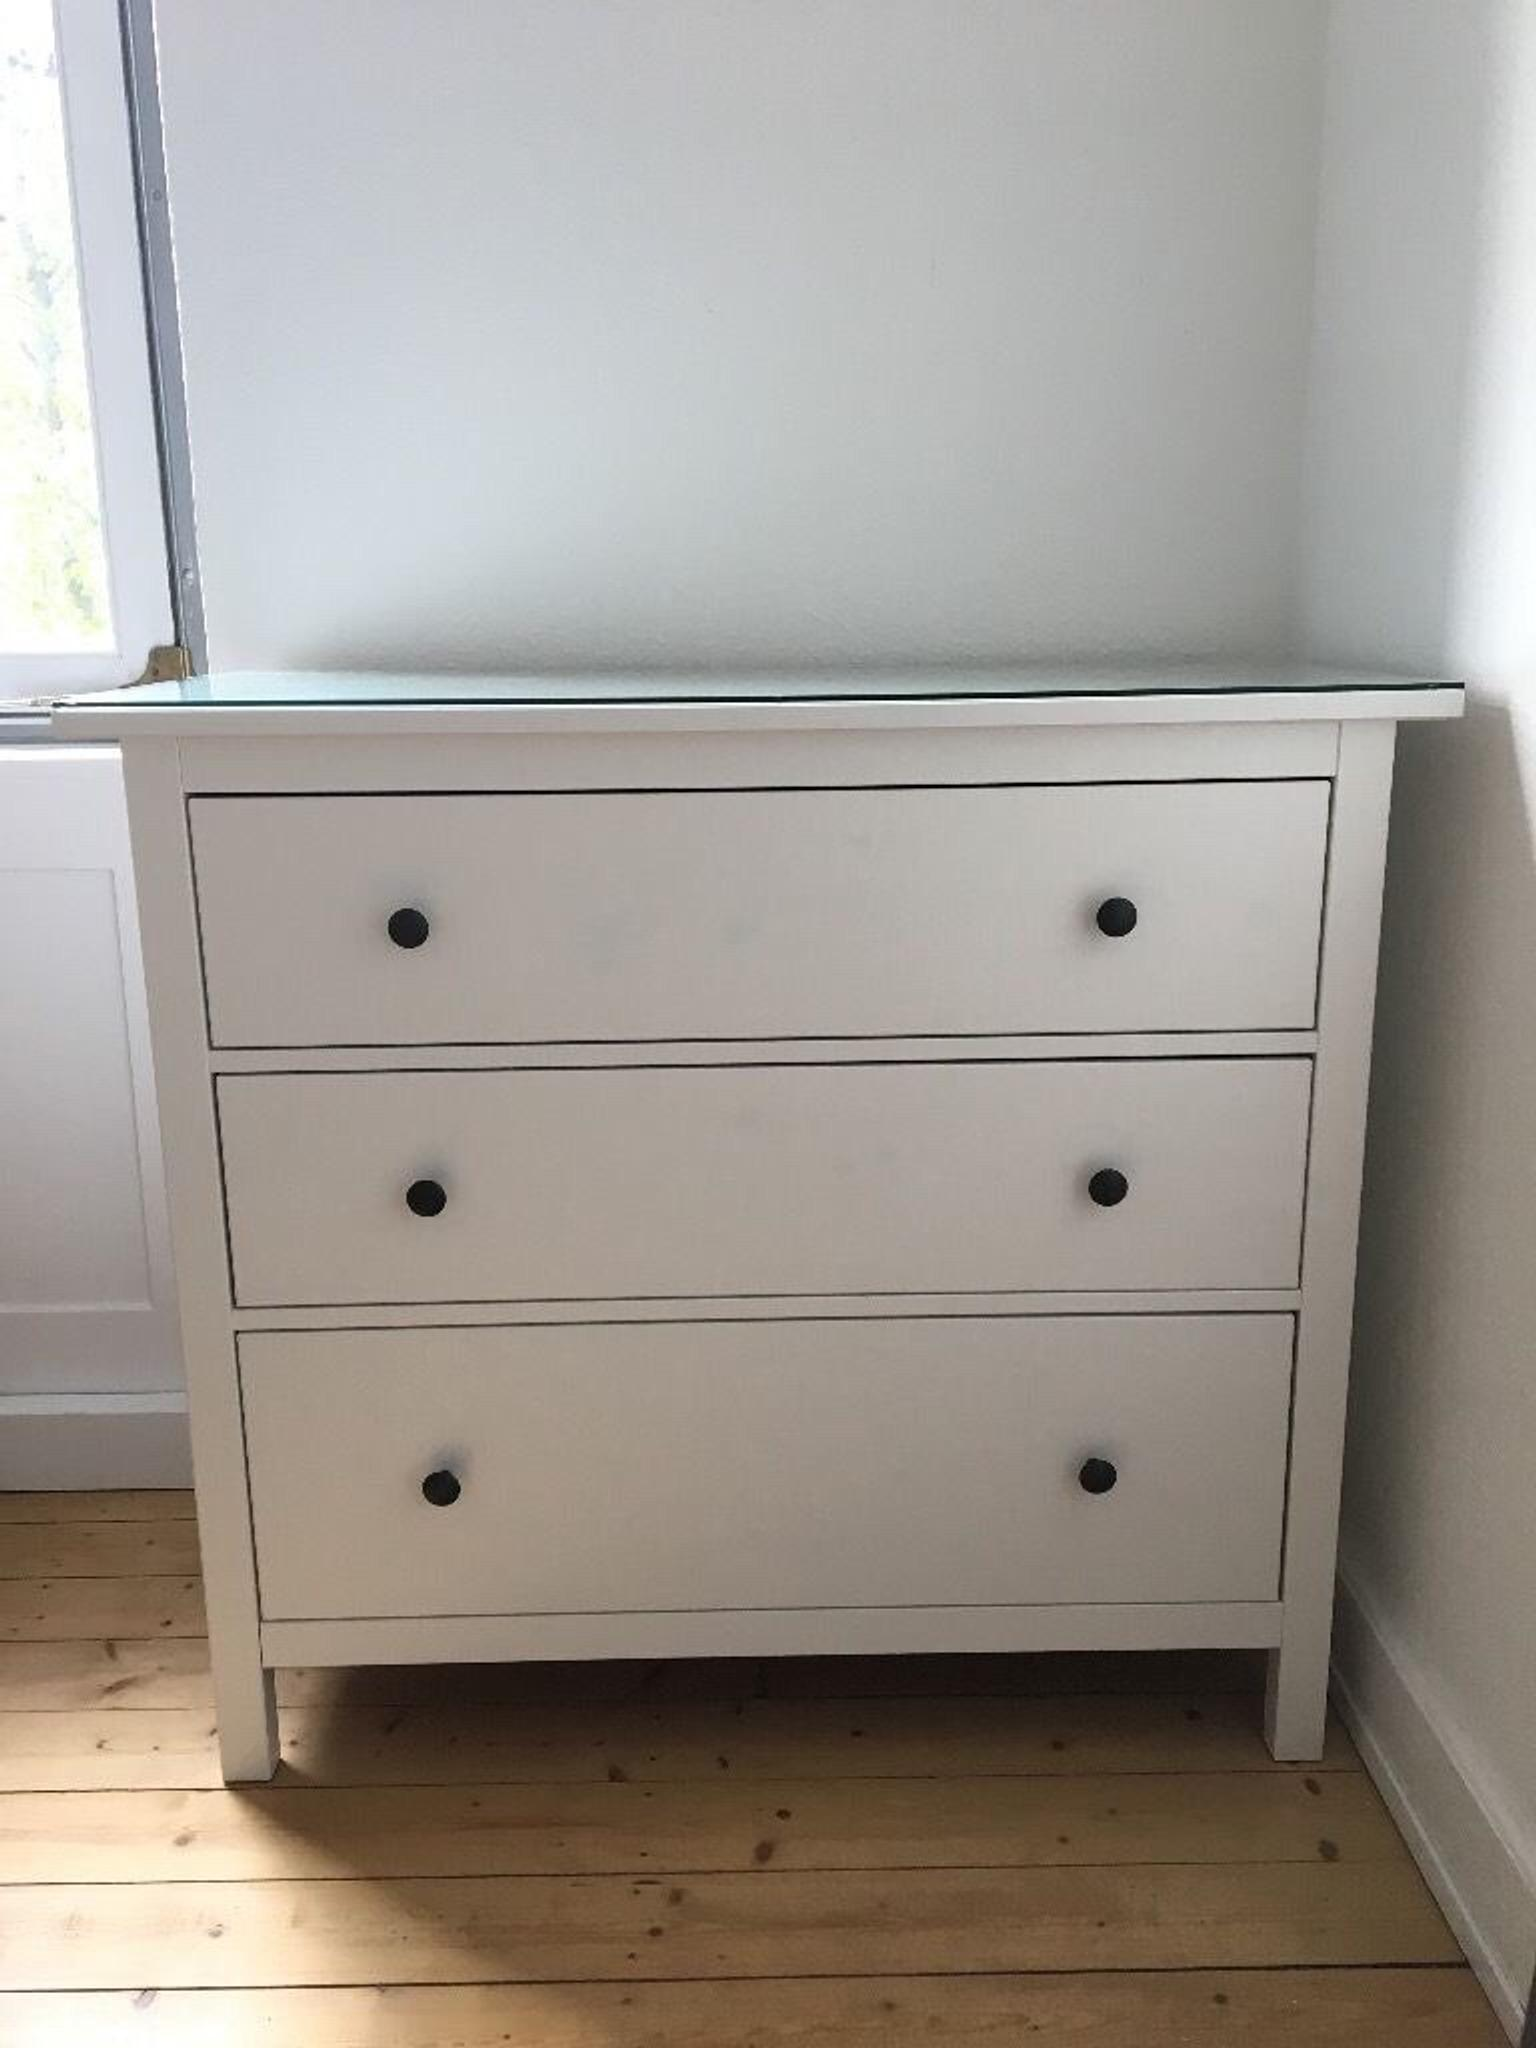 ikea hemnes kommode inkl glasplatte wie neu in 69126 heidelberg for